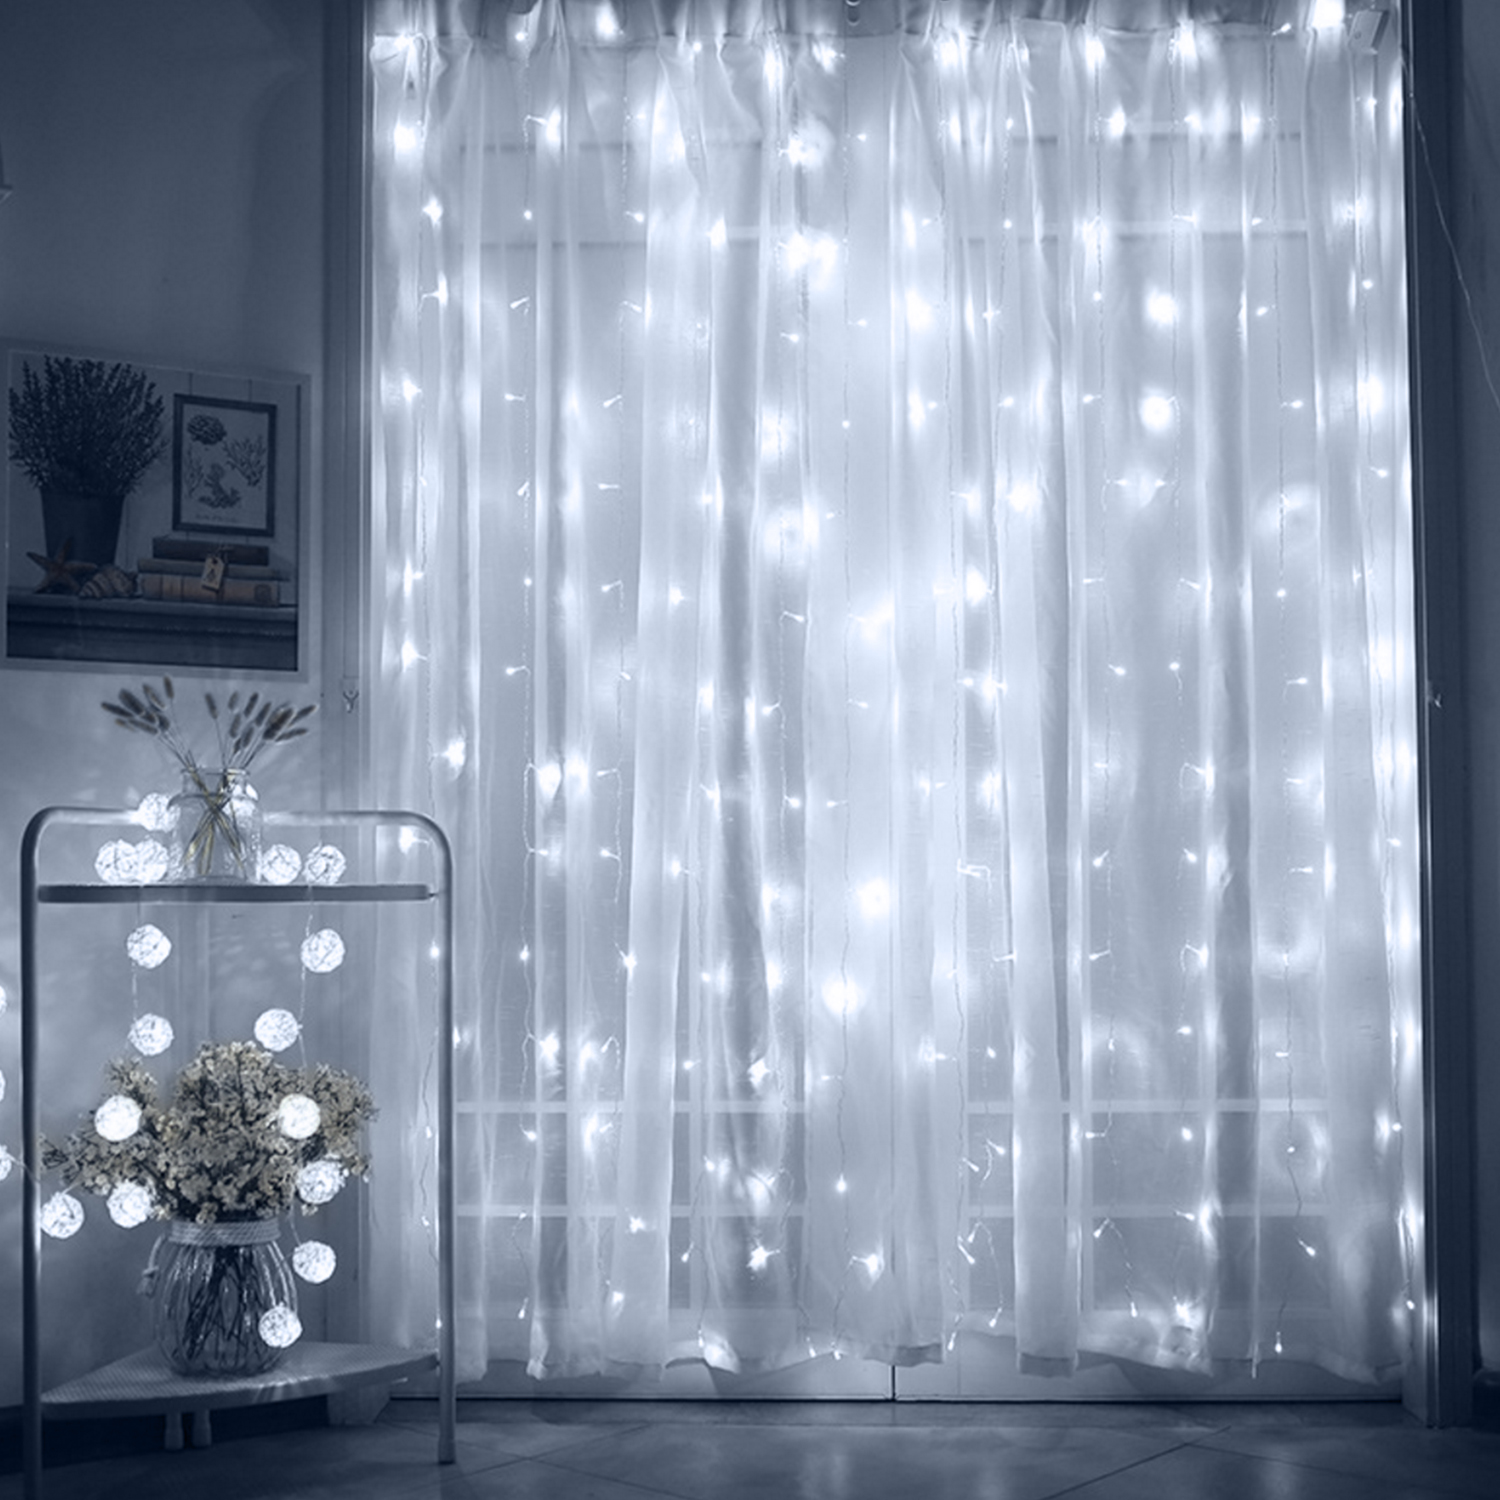 Torchstar 9 8ft X 9 8ft Led Curtain Lights Starry